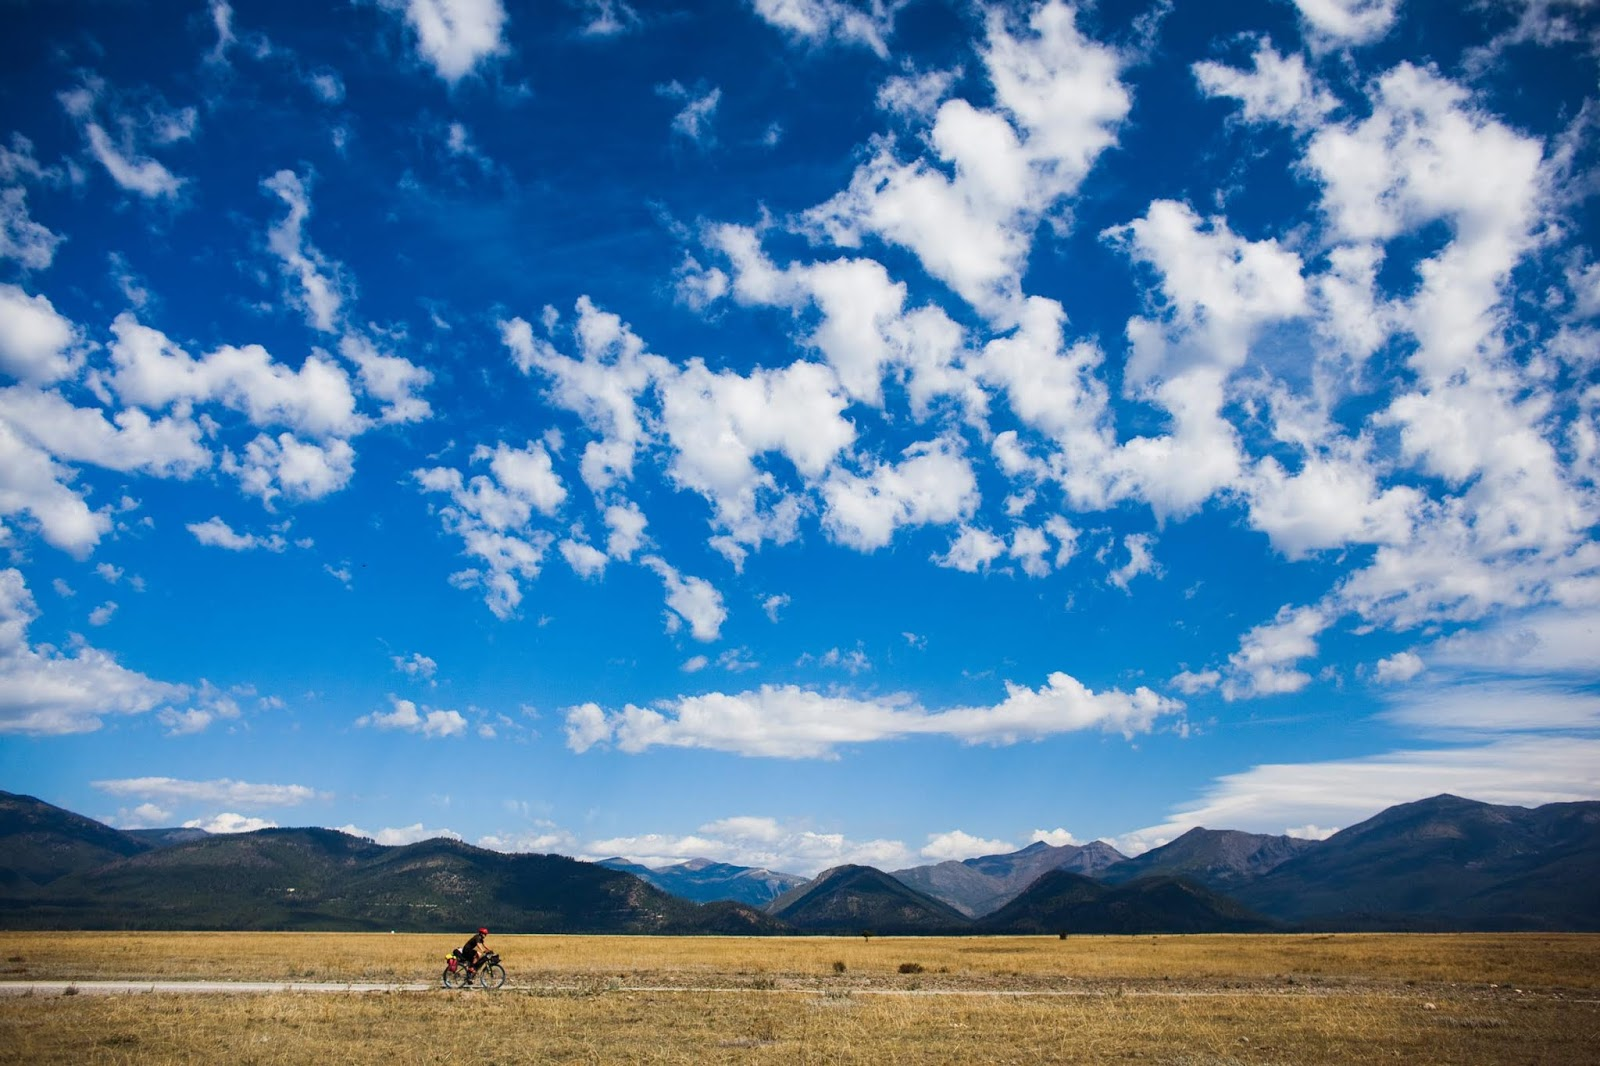 Tour Divide Route – Credit: Bikepacking.com